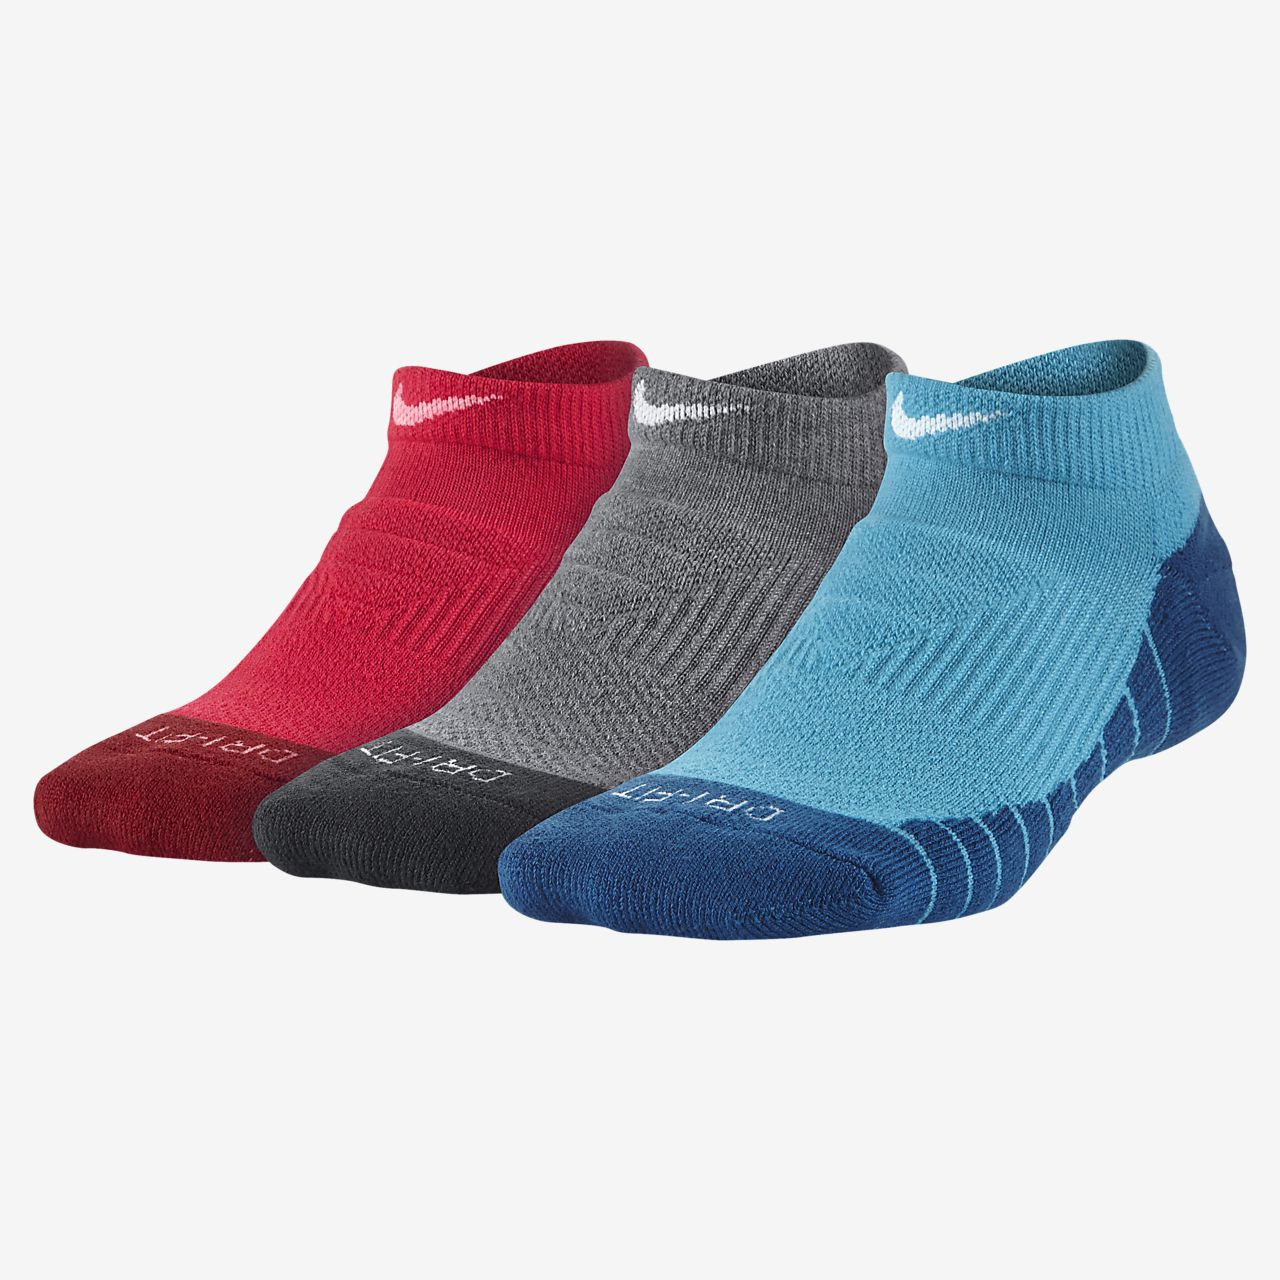 huge selection of 70150 a33fb Nike Dri-FIT Cushion No-Show